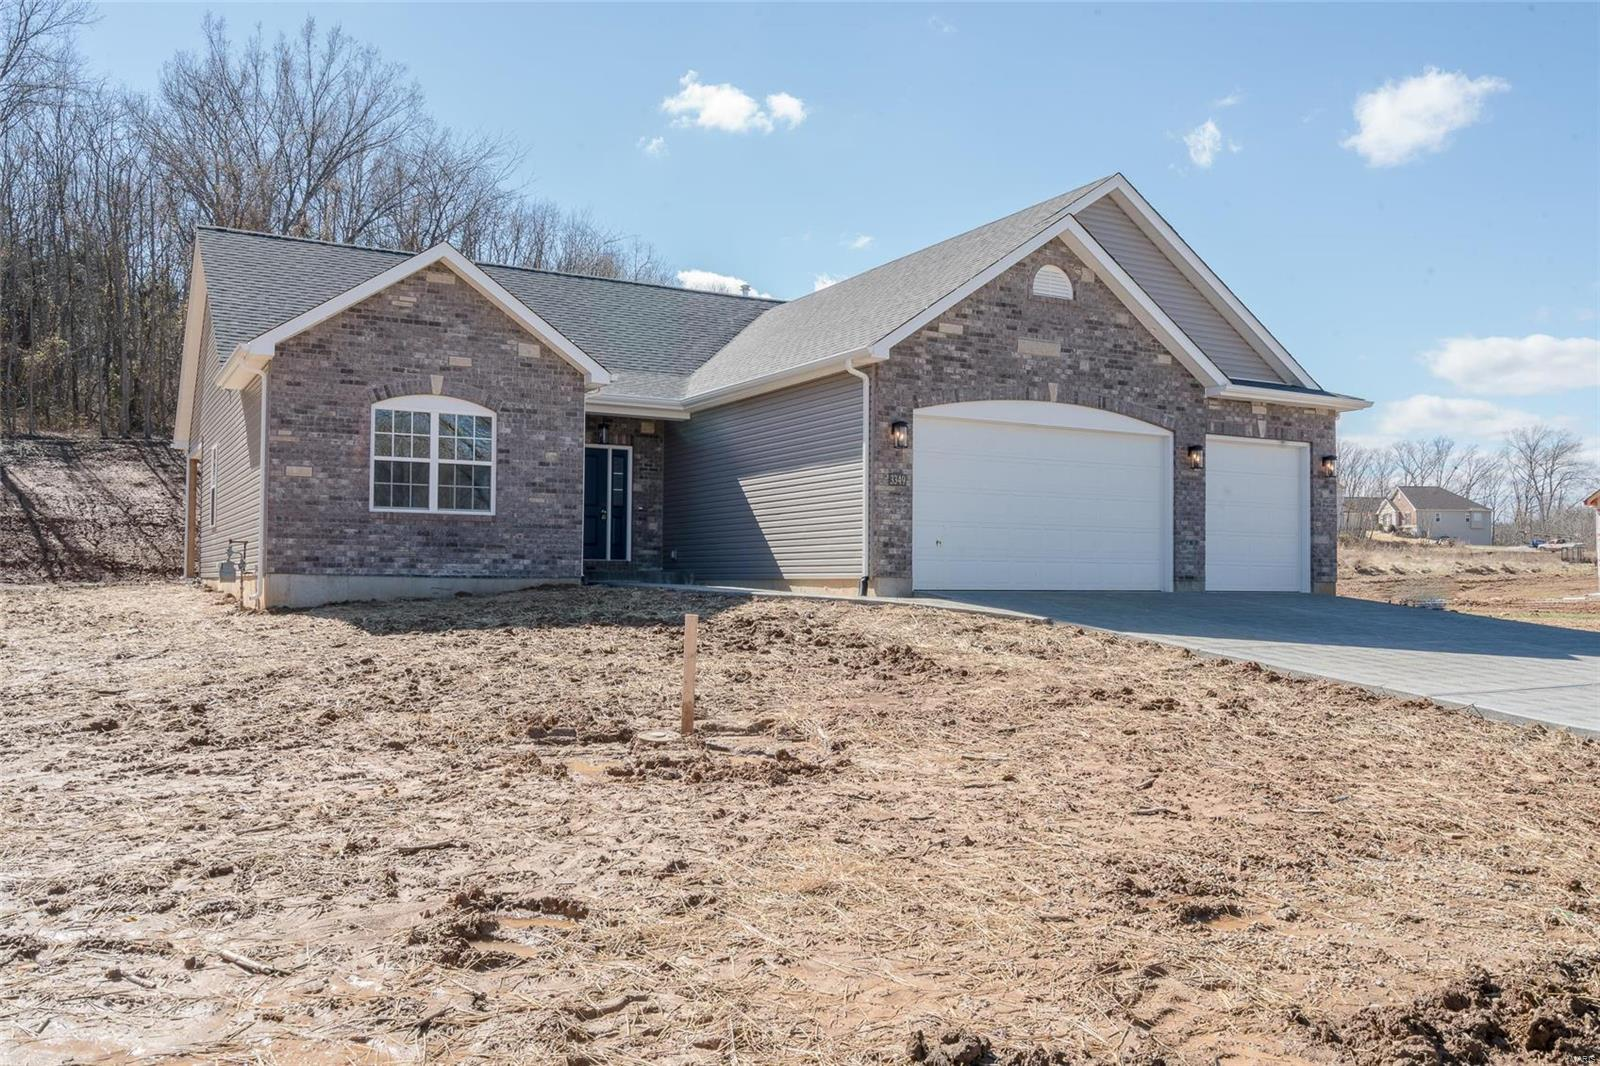 3340 Whispering Creek (Lot 182) Property Photo - Festus, MO real estate listing